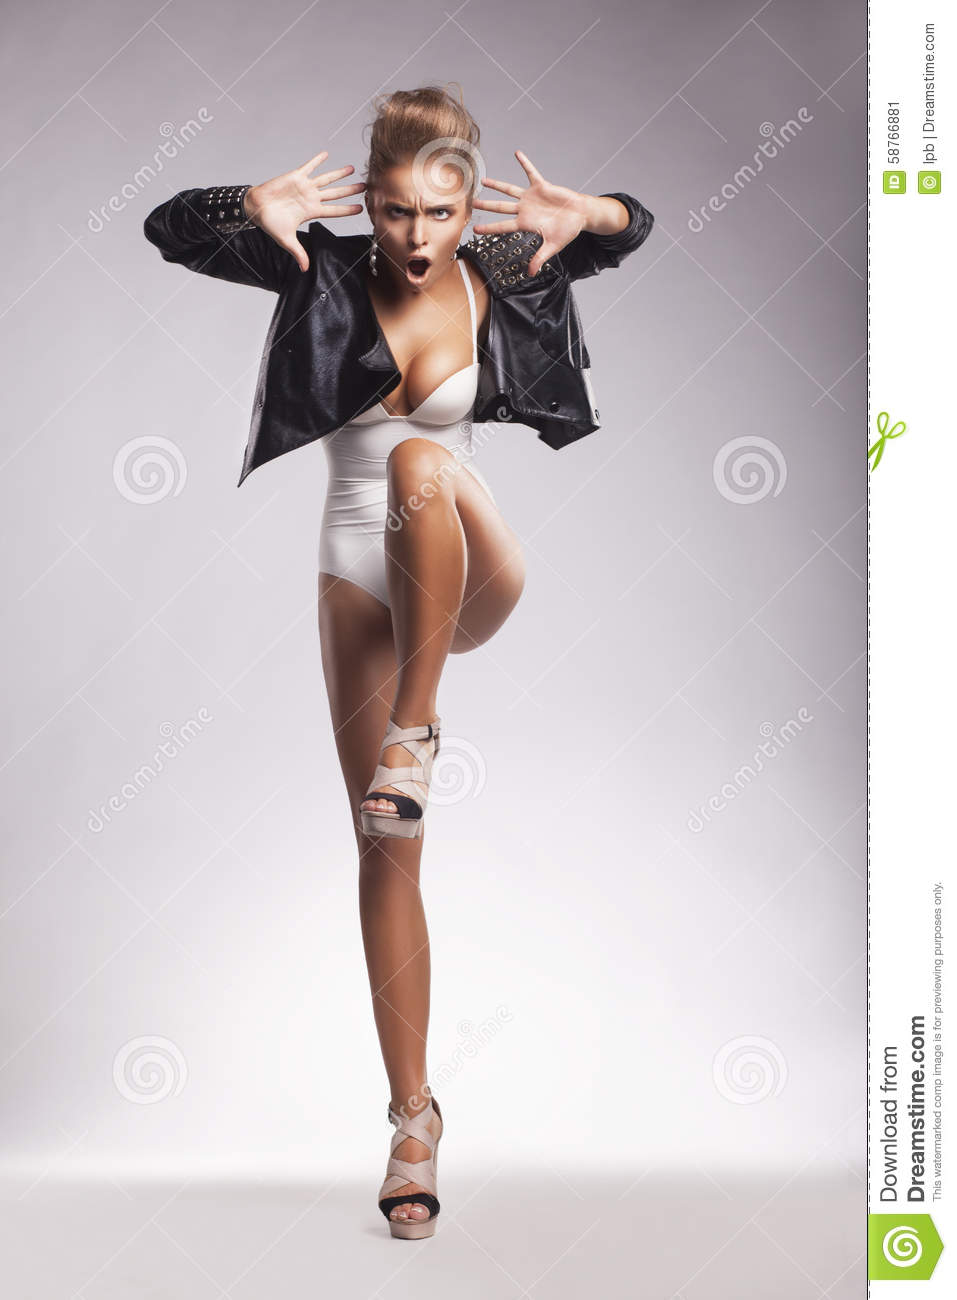 Download Night Club. Eccentric Young Woman Dancing Stock Image - Image of enthusiastic, beauty: 58766881